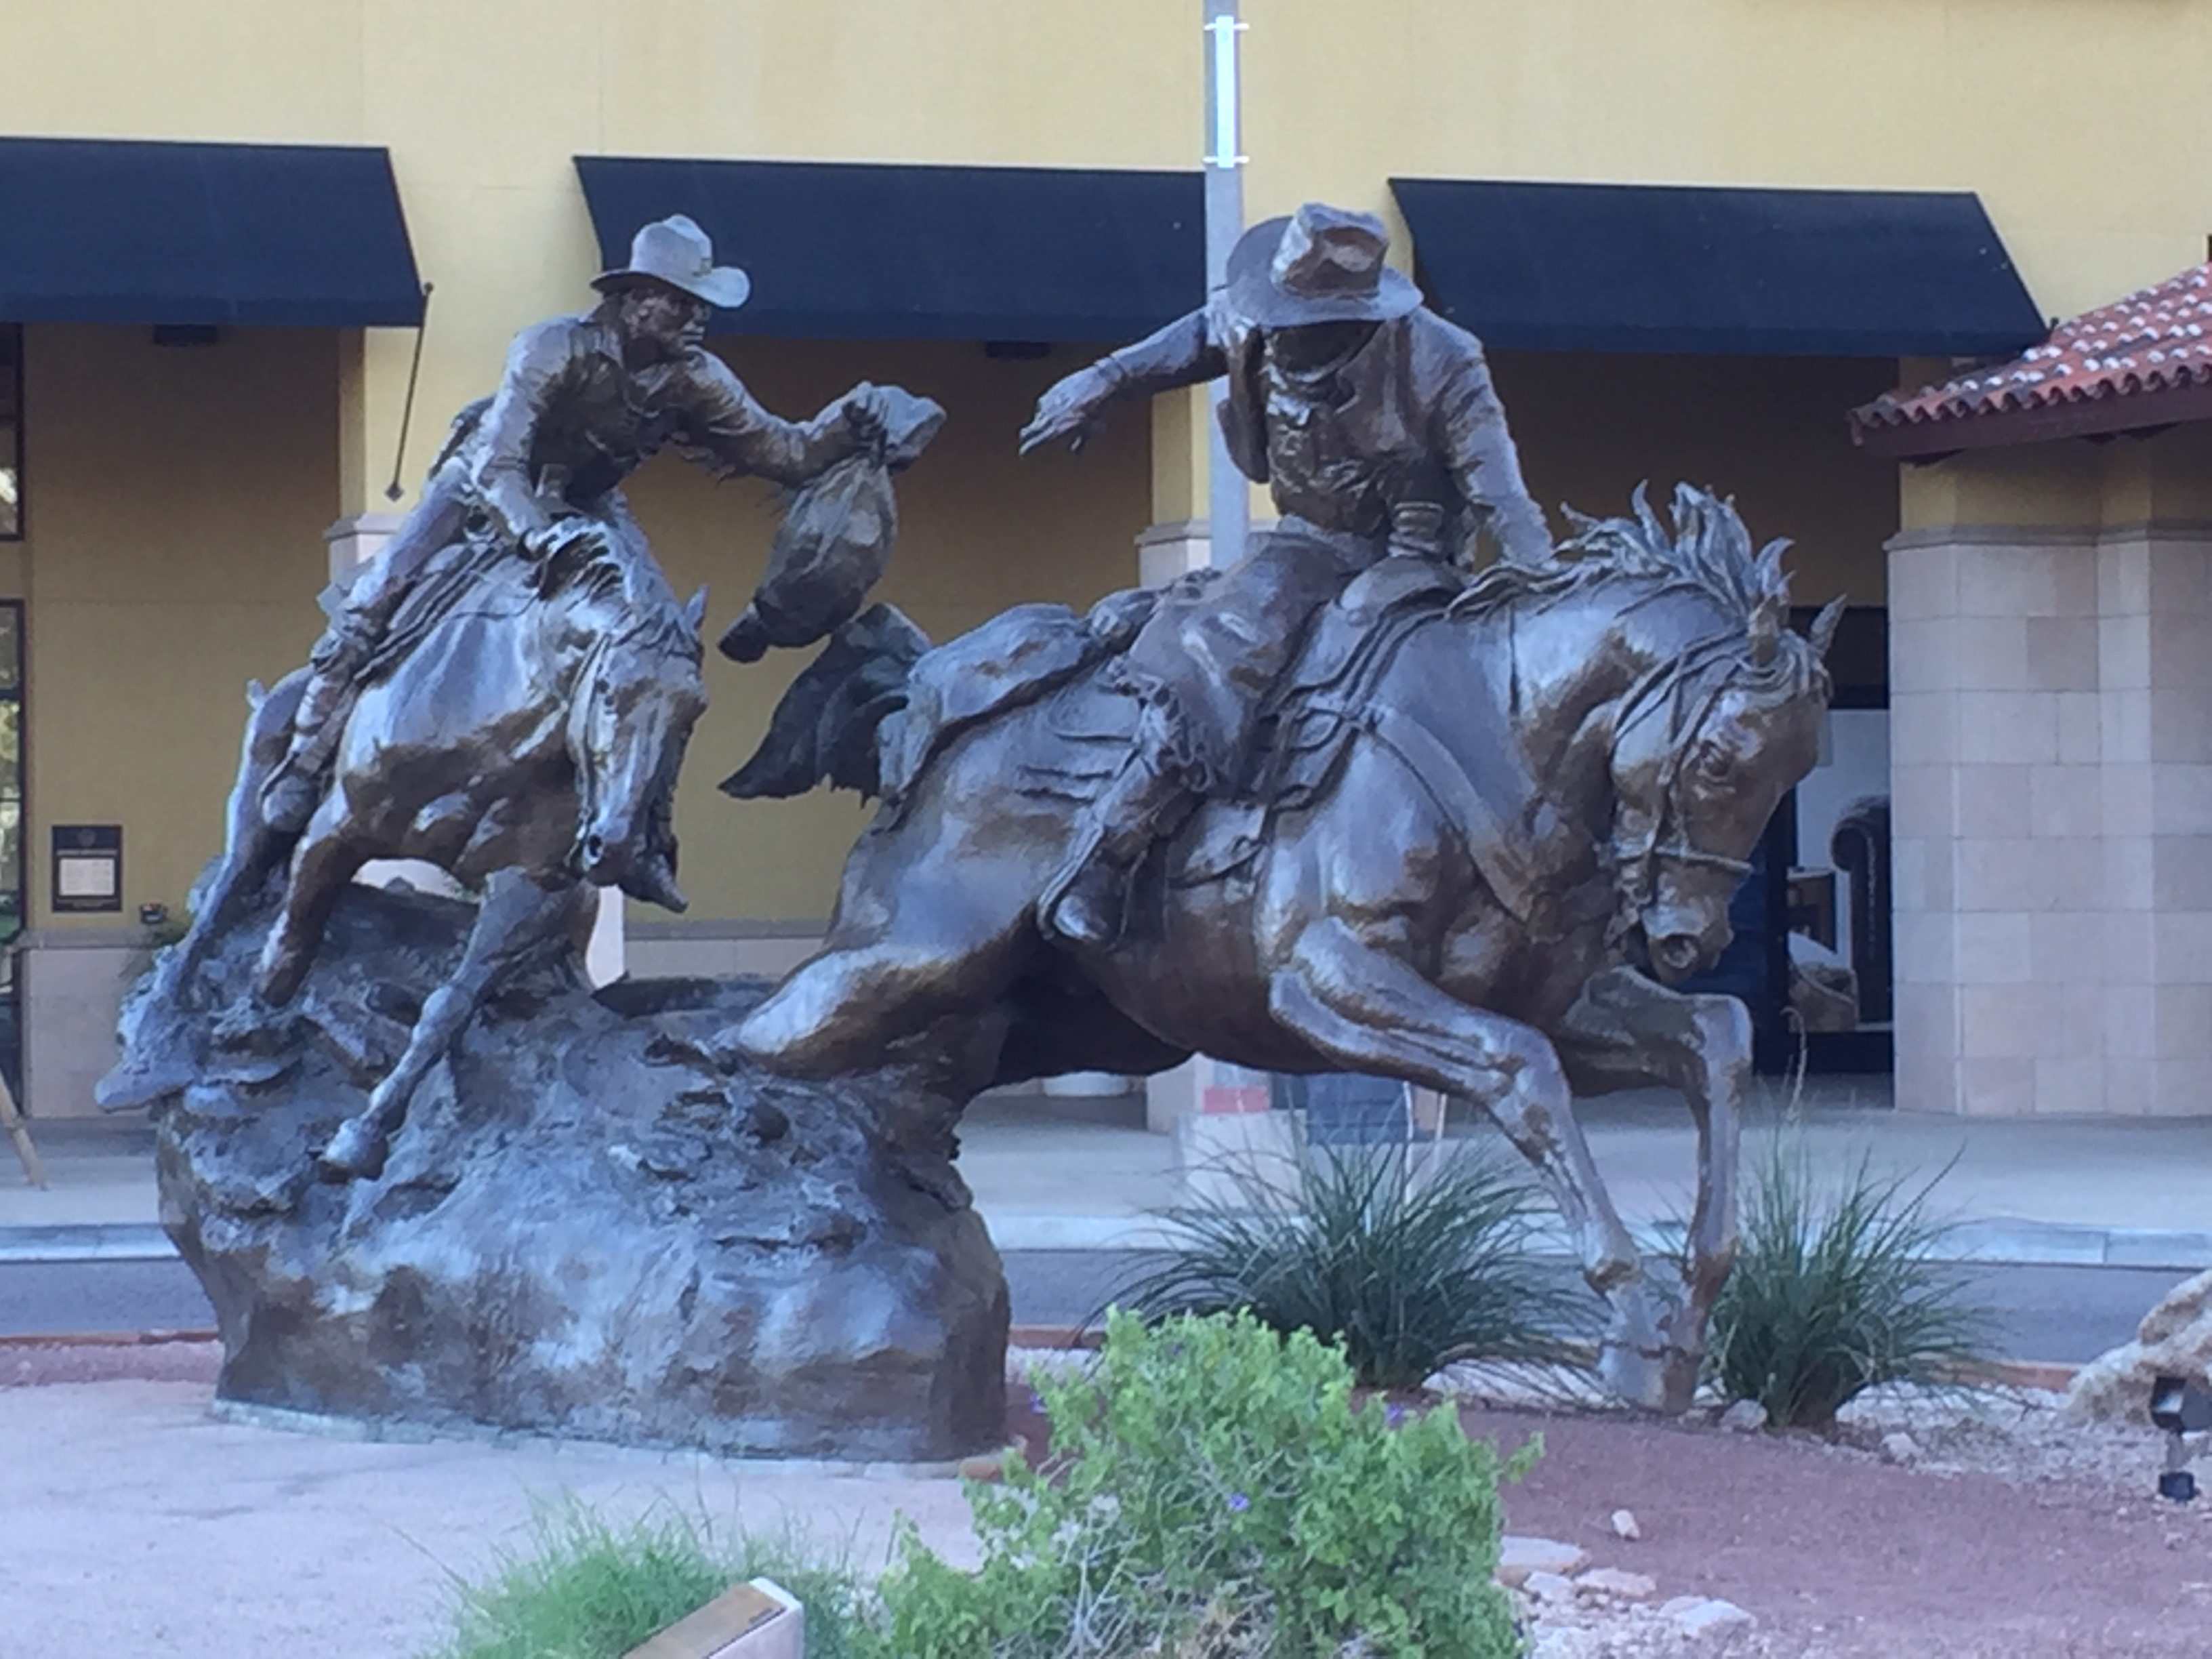 """The lifesize bronze statue """"Passing the Legacy"""" is the endpoint for the Annual Hashknife Pony Express ride in Scottsdale, Arizona."""